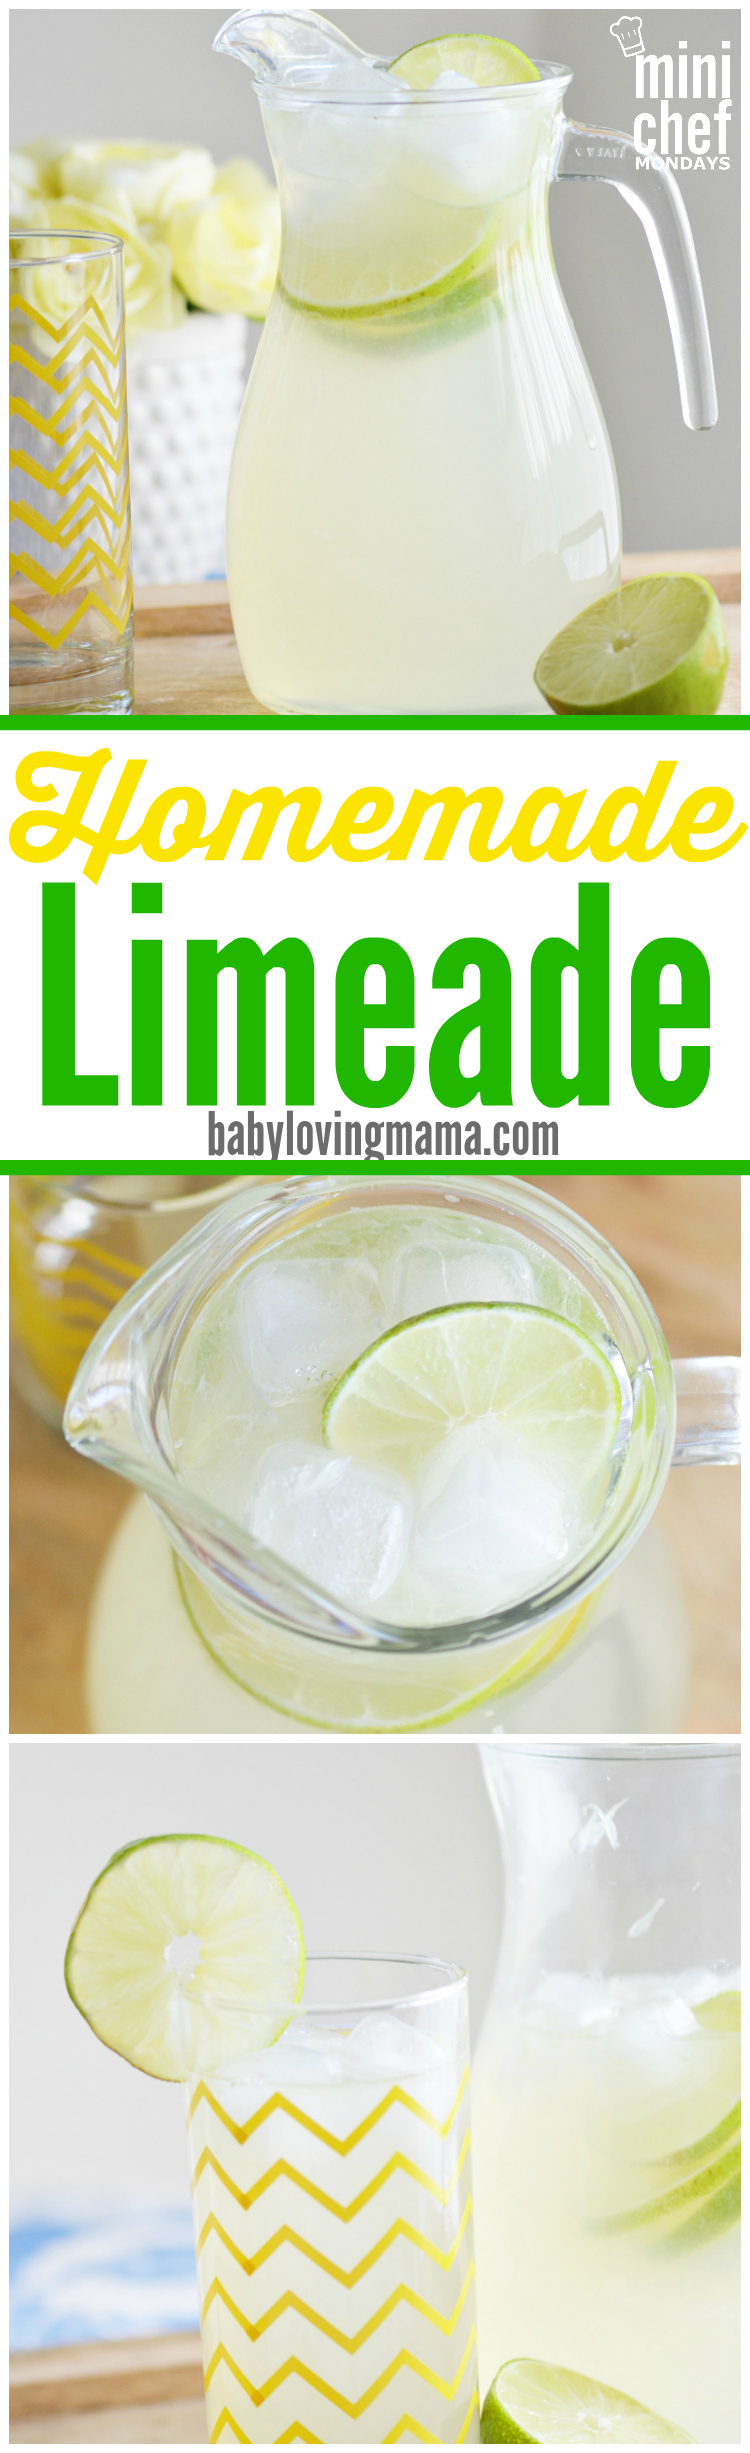 This refreshing homemade limeade is a great alternative to lemonade. It uses simple syrup instead of regular sugar to make it the best limeade recipe around!